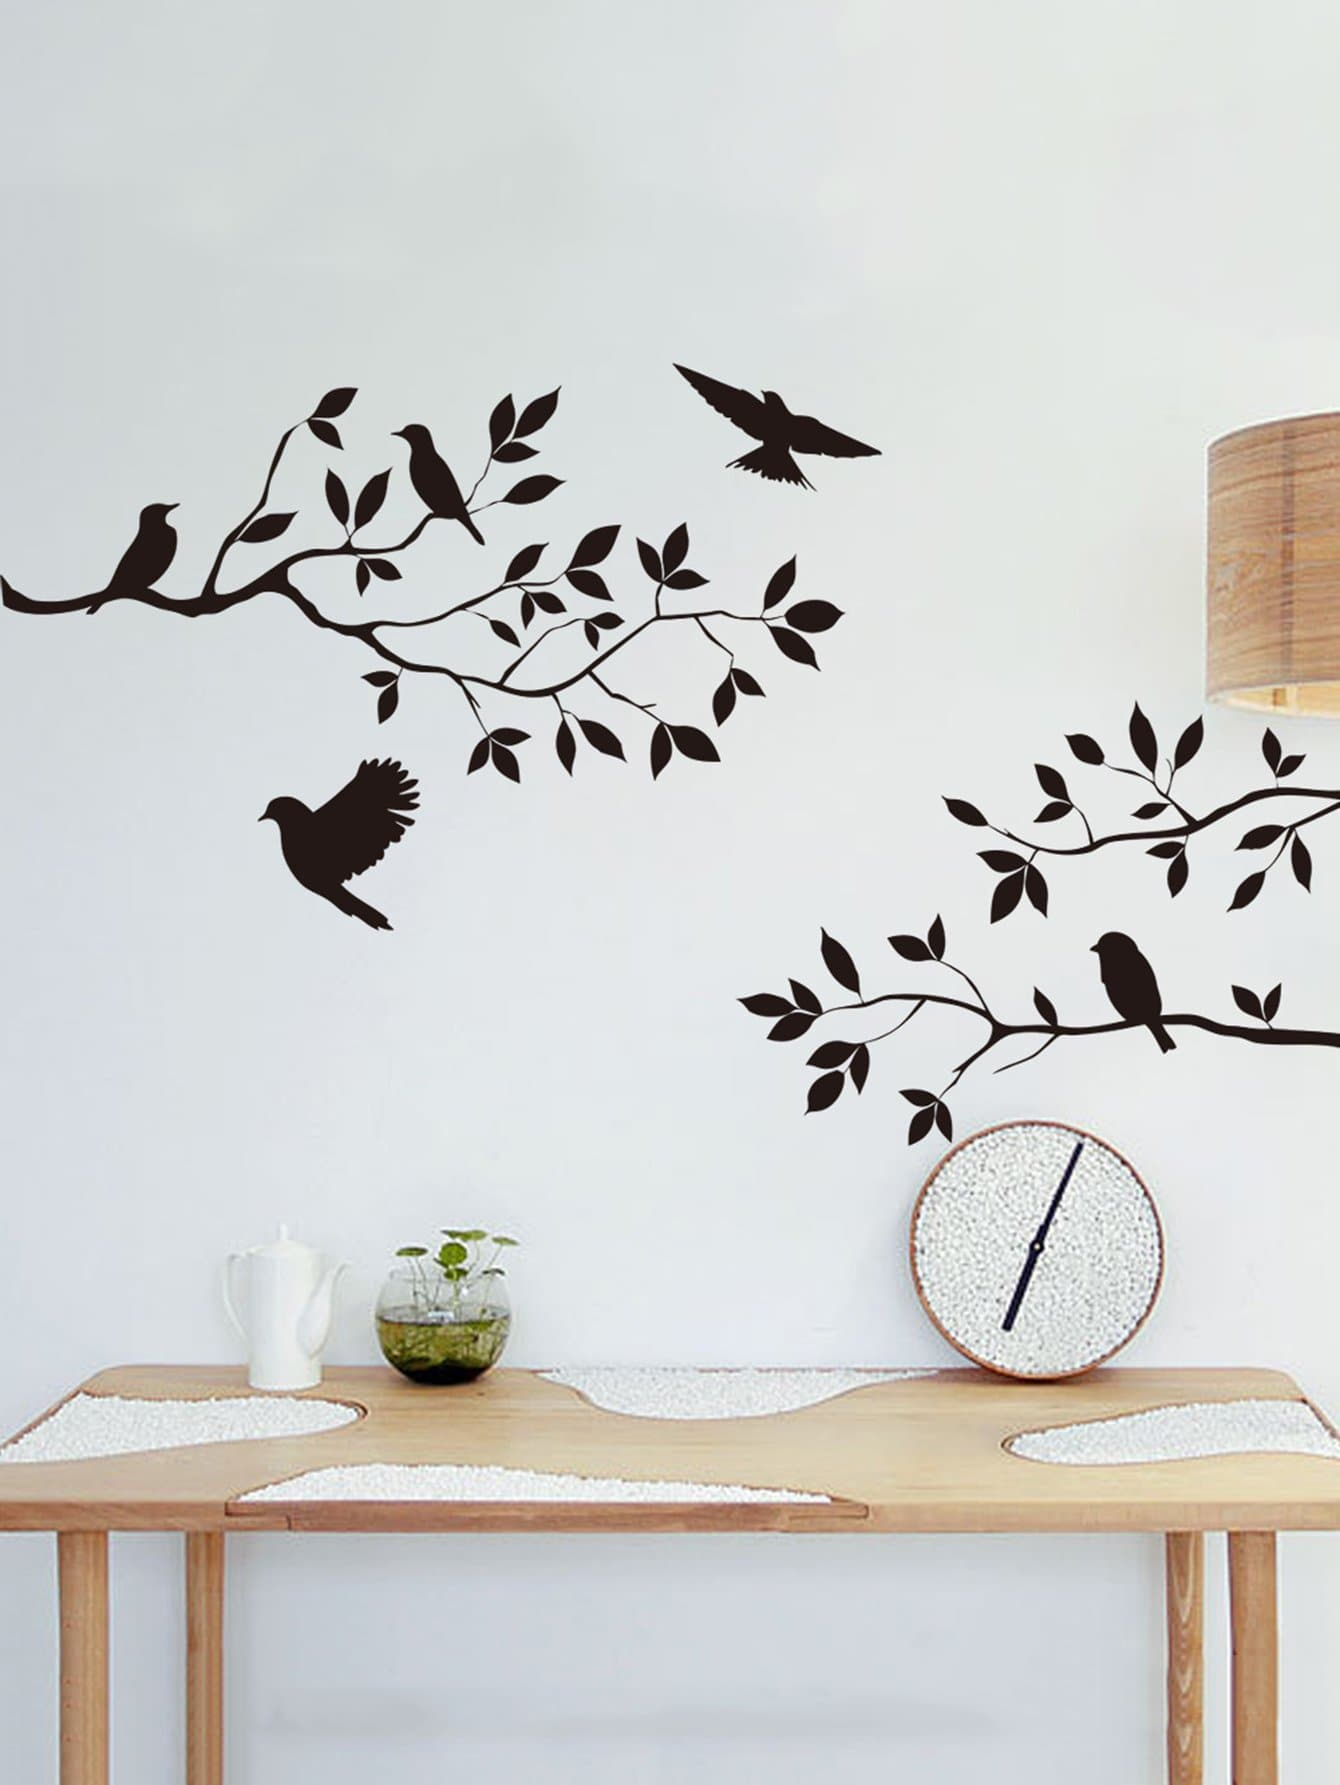 Branch & Bird Wall Sticker sweet branch bird pattern removeable toilet wall sticker